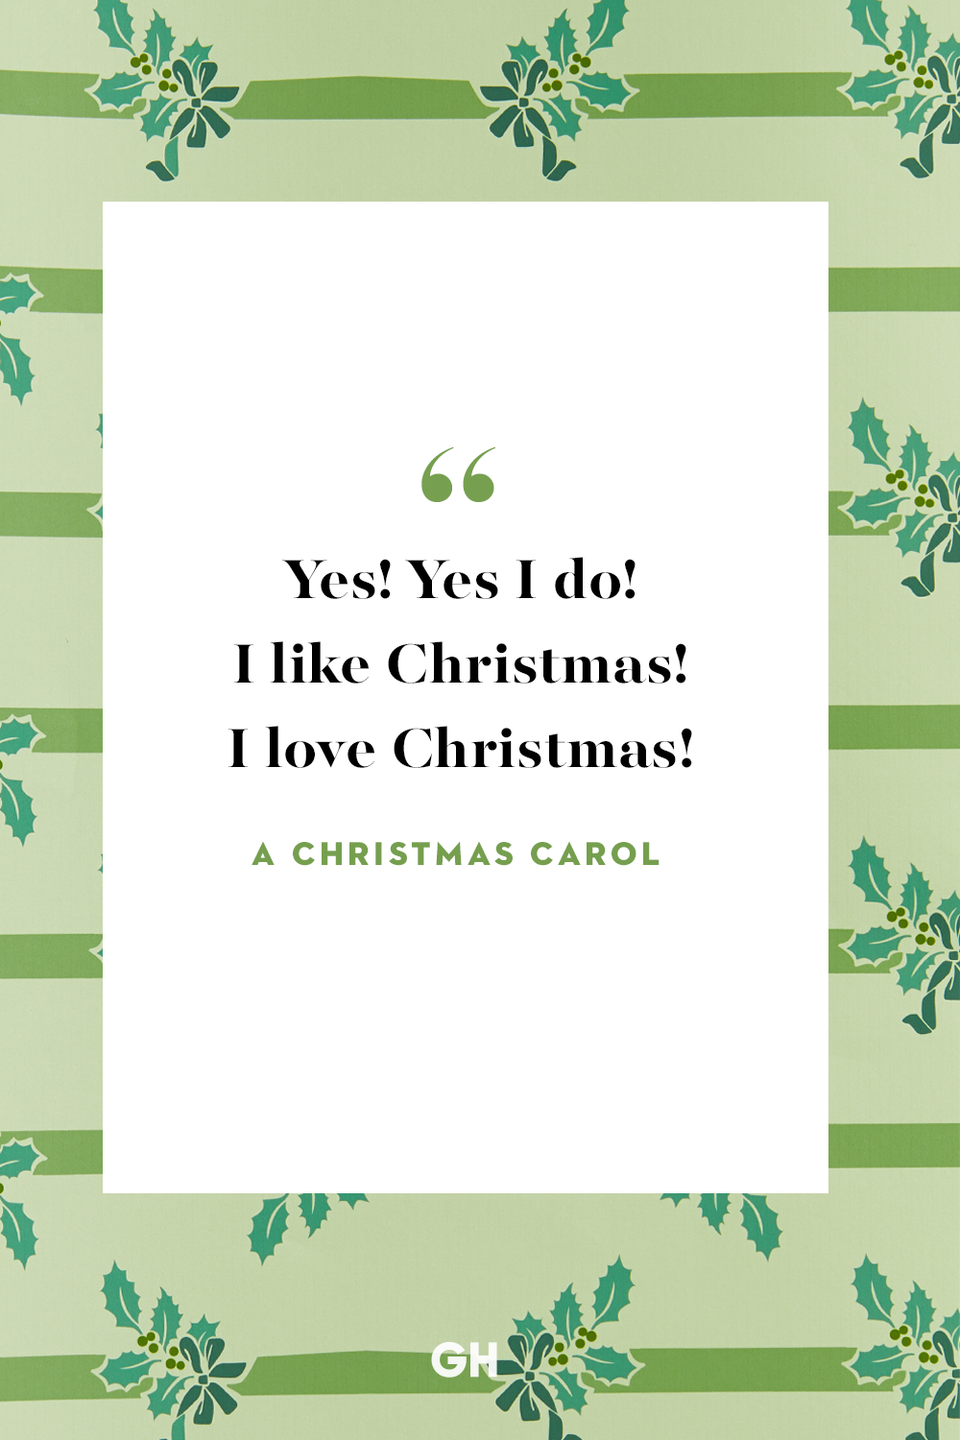 "<p>Yes! Yes I do! I like Christmas! I love Christmas! </p><p><strong>RELATED:</strong> <a href=""https://www.goodhousekeeping.com/holidays/christmas-ideas/g23743657/christmas-books/"" rel=""nofollow noopener"" target=""_blank"" data-ylk=""slk:30+ Best Christmas Books for Readers of All Ages That Aren't &quot;The Night Before Christmas&quot;"" class=""link rapid-noclick-resp"">30+ Best Christmas Books for Readers of All Ages That Aren't ""The Night Before Christmas""</a></p>"